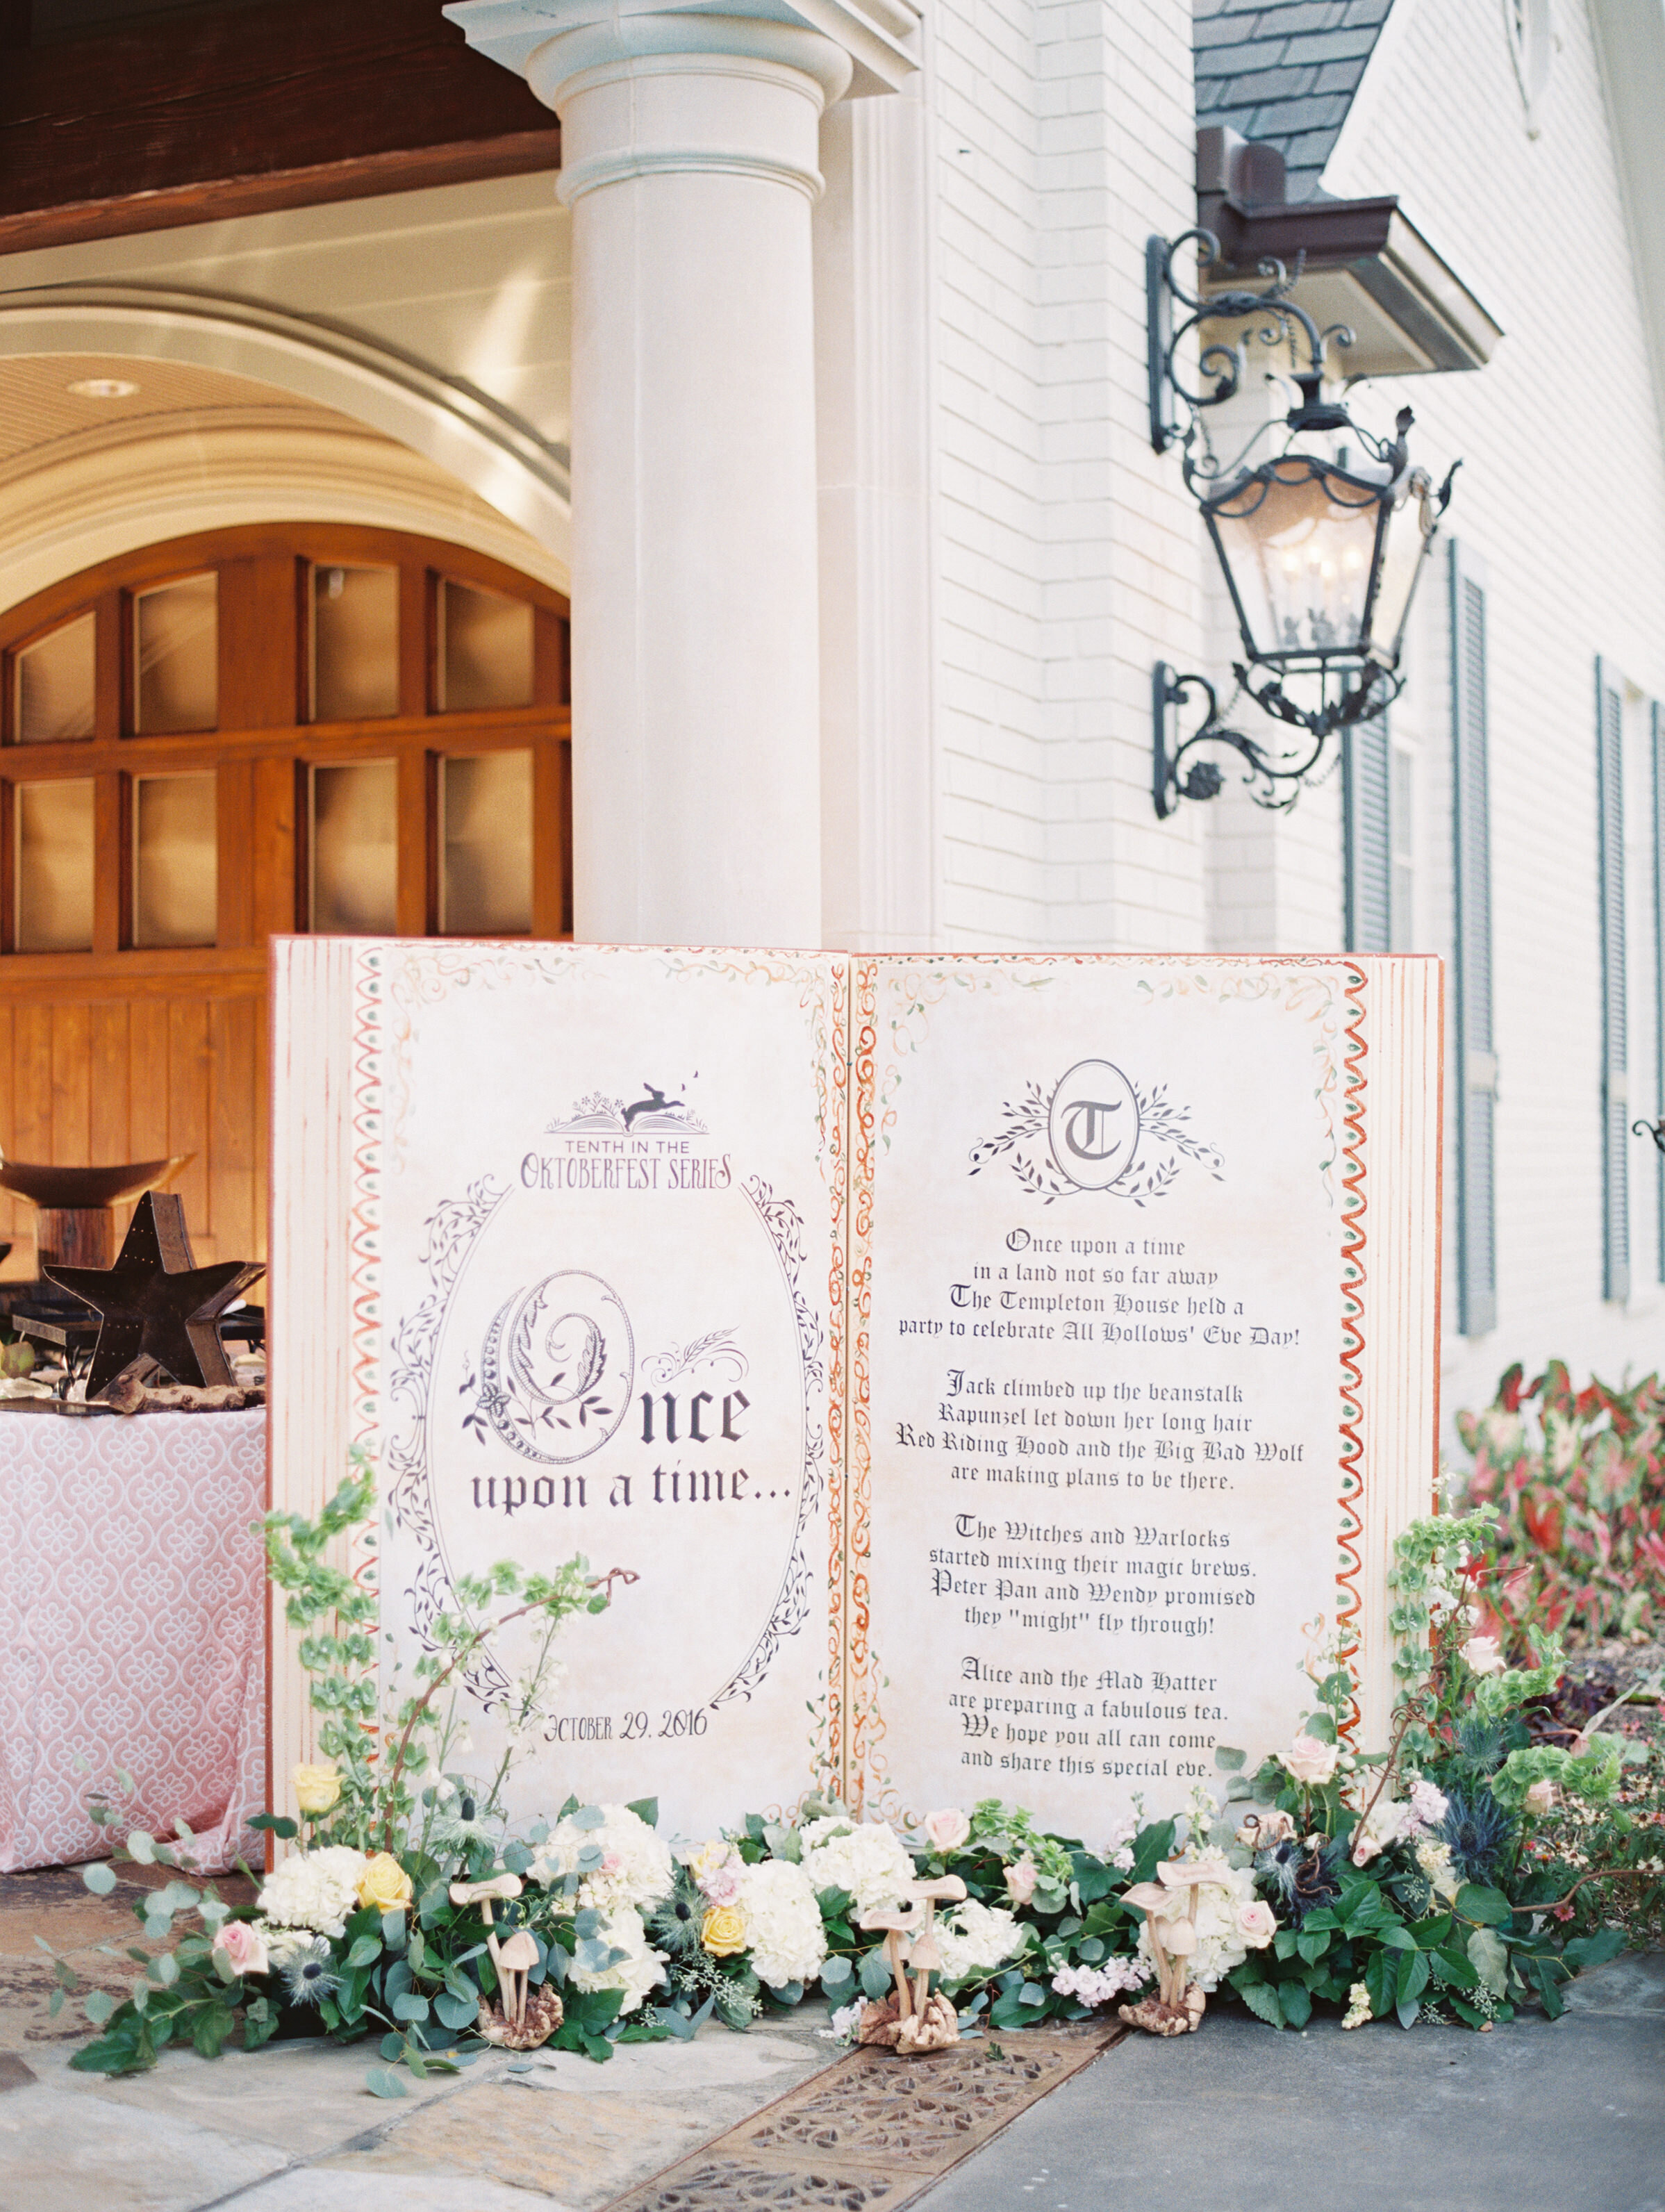 storybook themed party texas event planner pop parties allen tsai photo 1